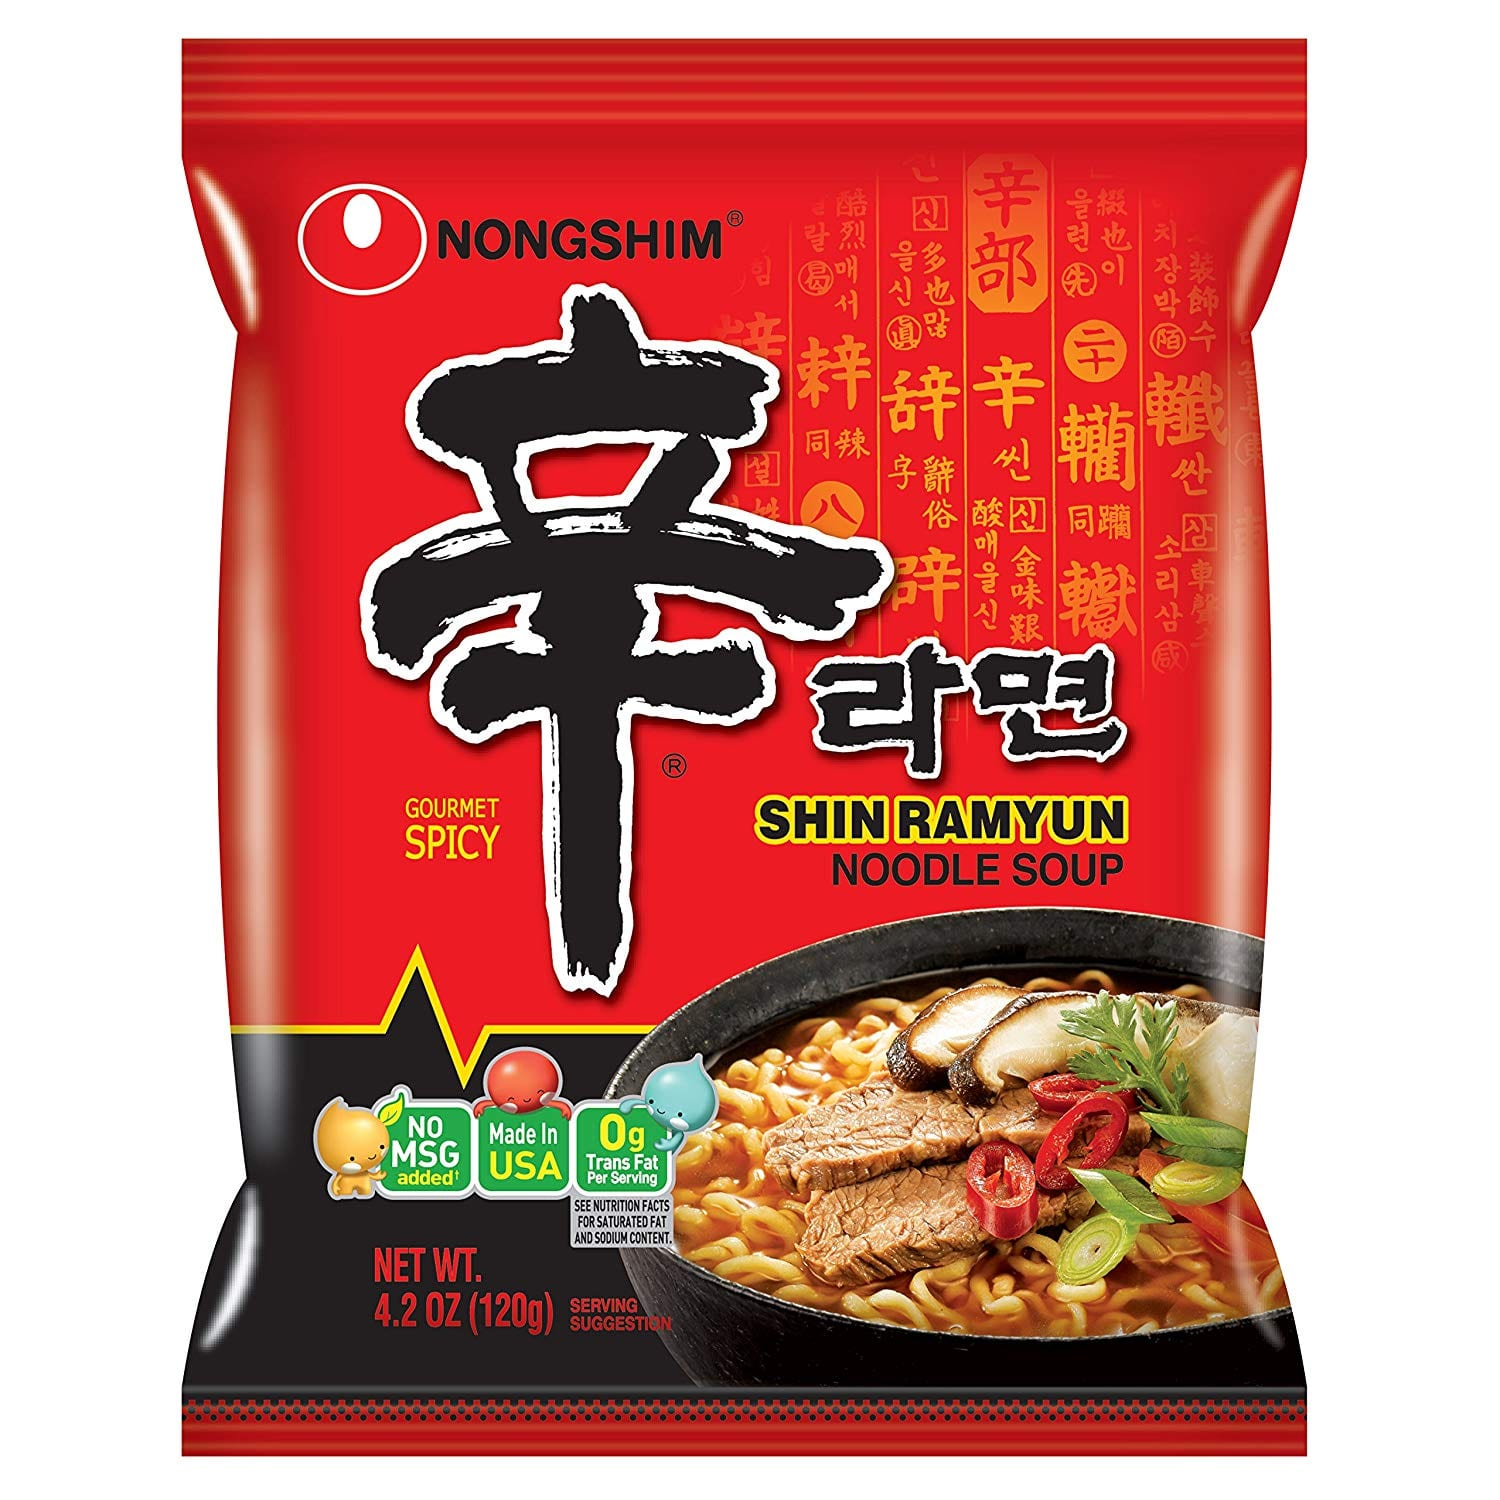 NongShim Shin Ramyun Noodle Soup, Gourmet Spicy, 4.2 Ounce (Pack of 20) Amazon s&s $16.47